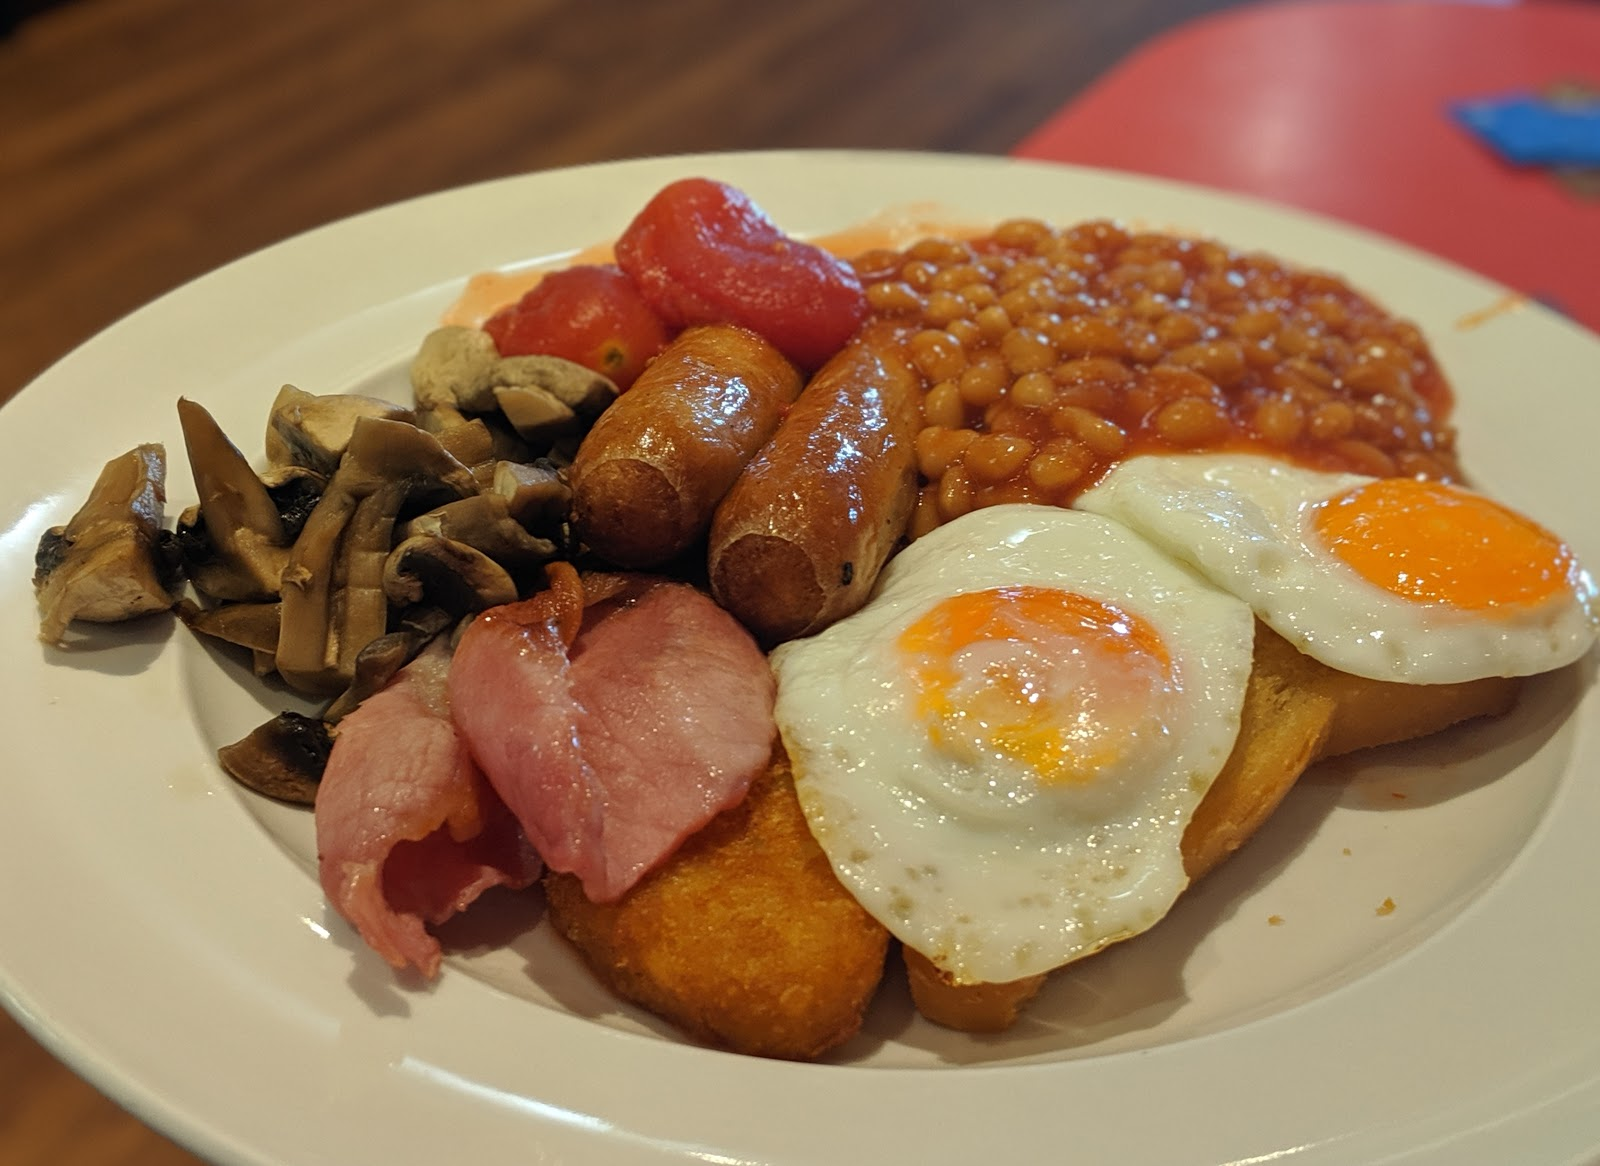 An A-Z Guide to Coral Island, Blackpool  - Full English Breakfast at Peggy's